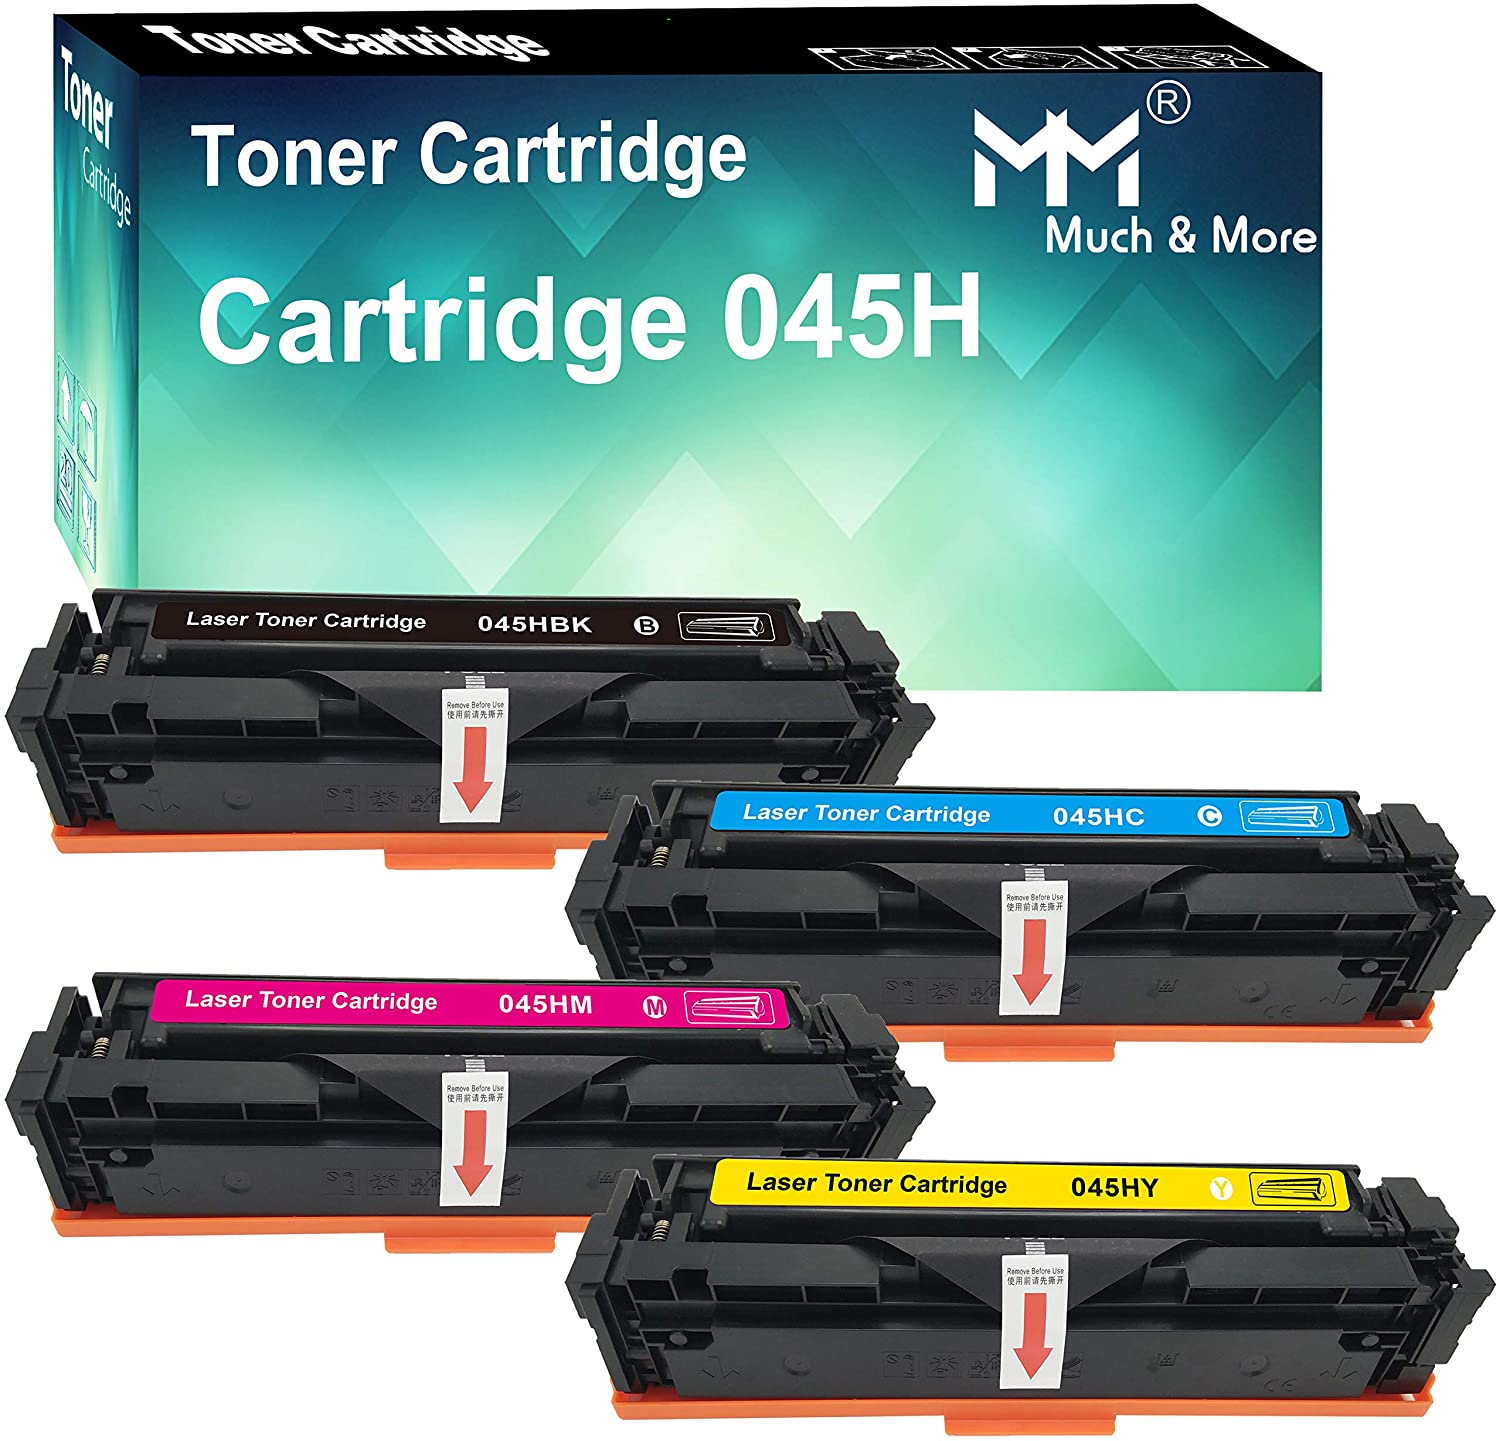 Compatible 4-Pack (BK+C+M+Y, High Yield) Cartridge 045 CRG-045H Toner Cartridge 045H Used for Canon MF634CDW MF632CDW LBP612CDW MF632CDW MF633CDW Printer, by MuchMore